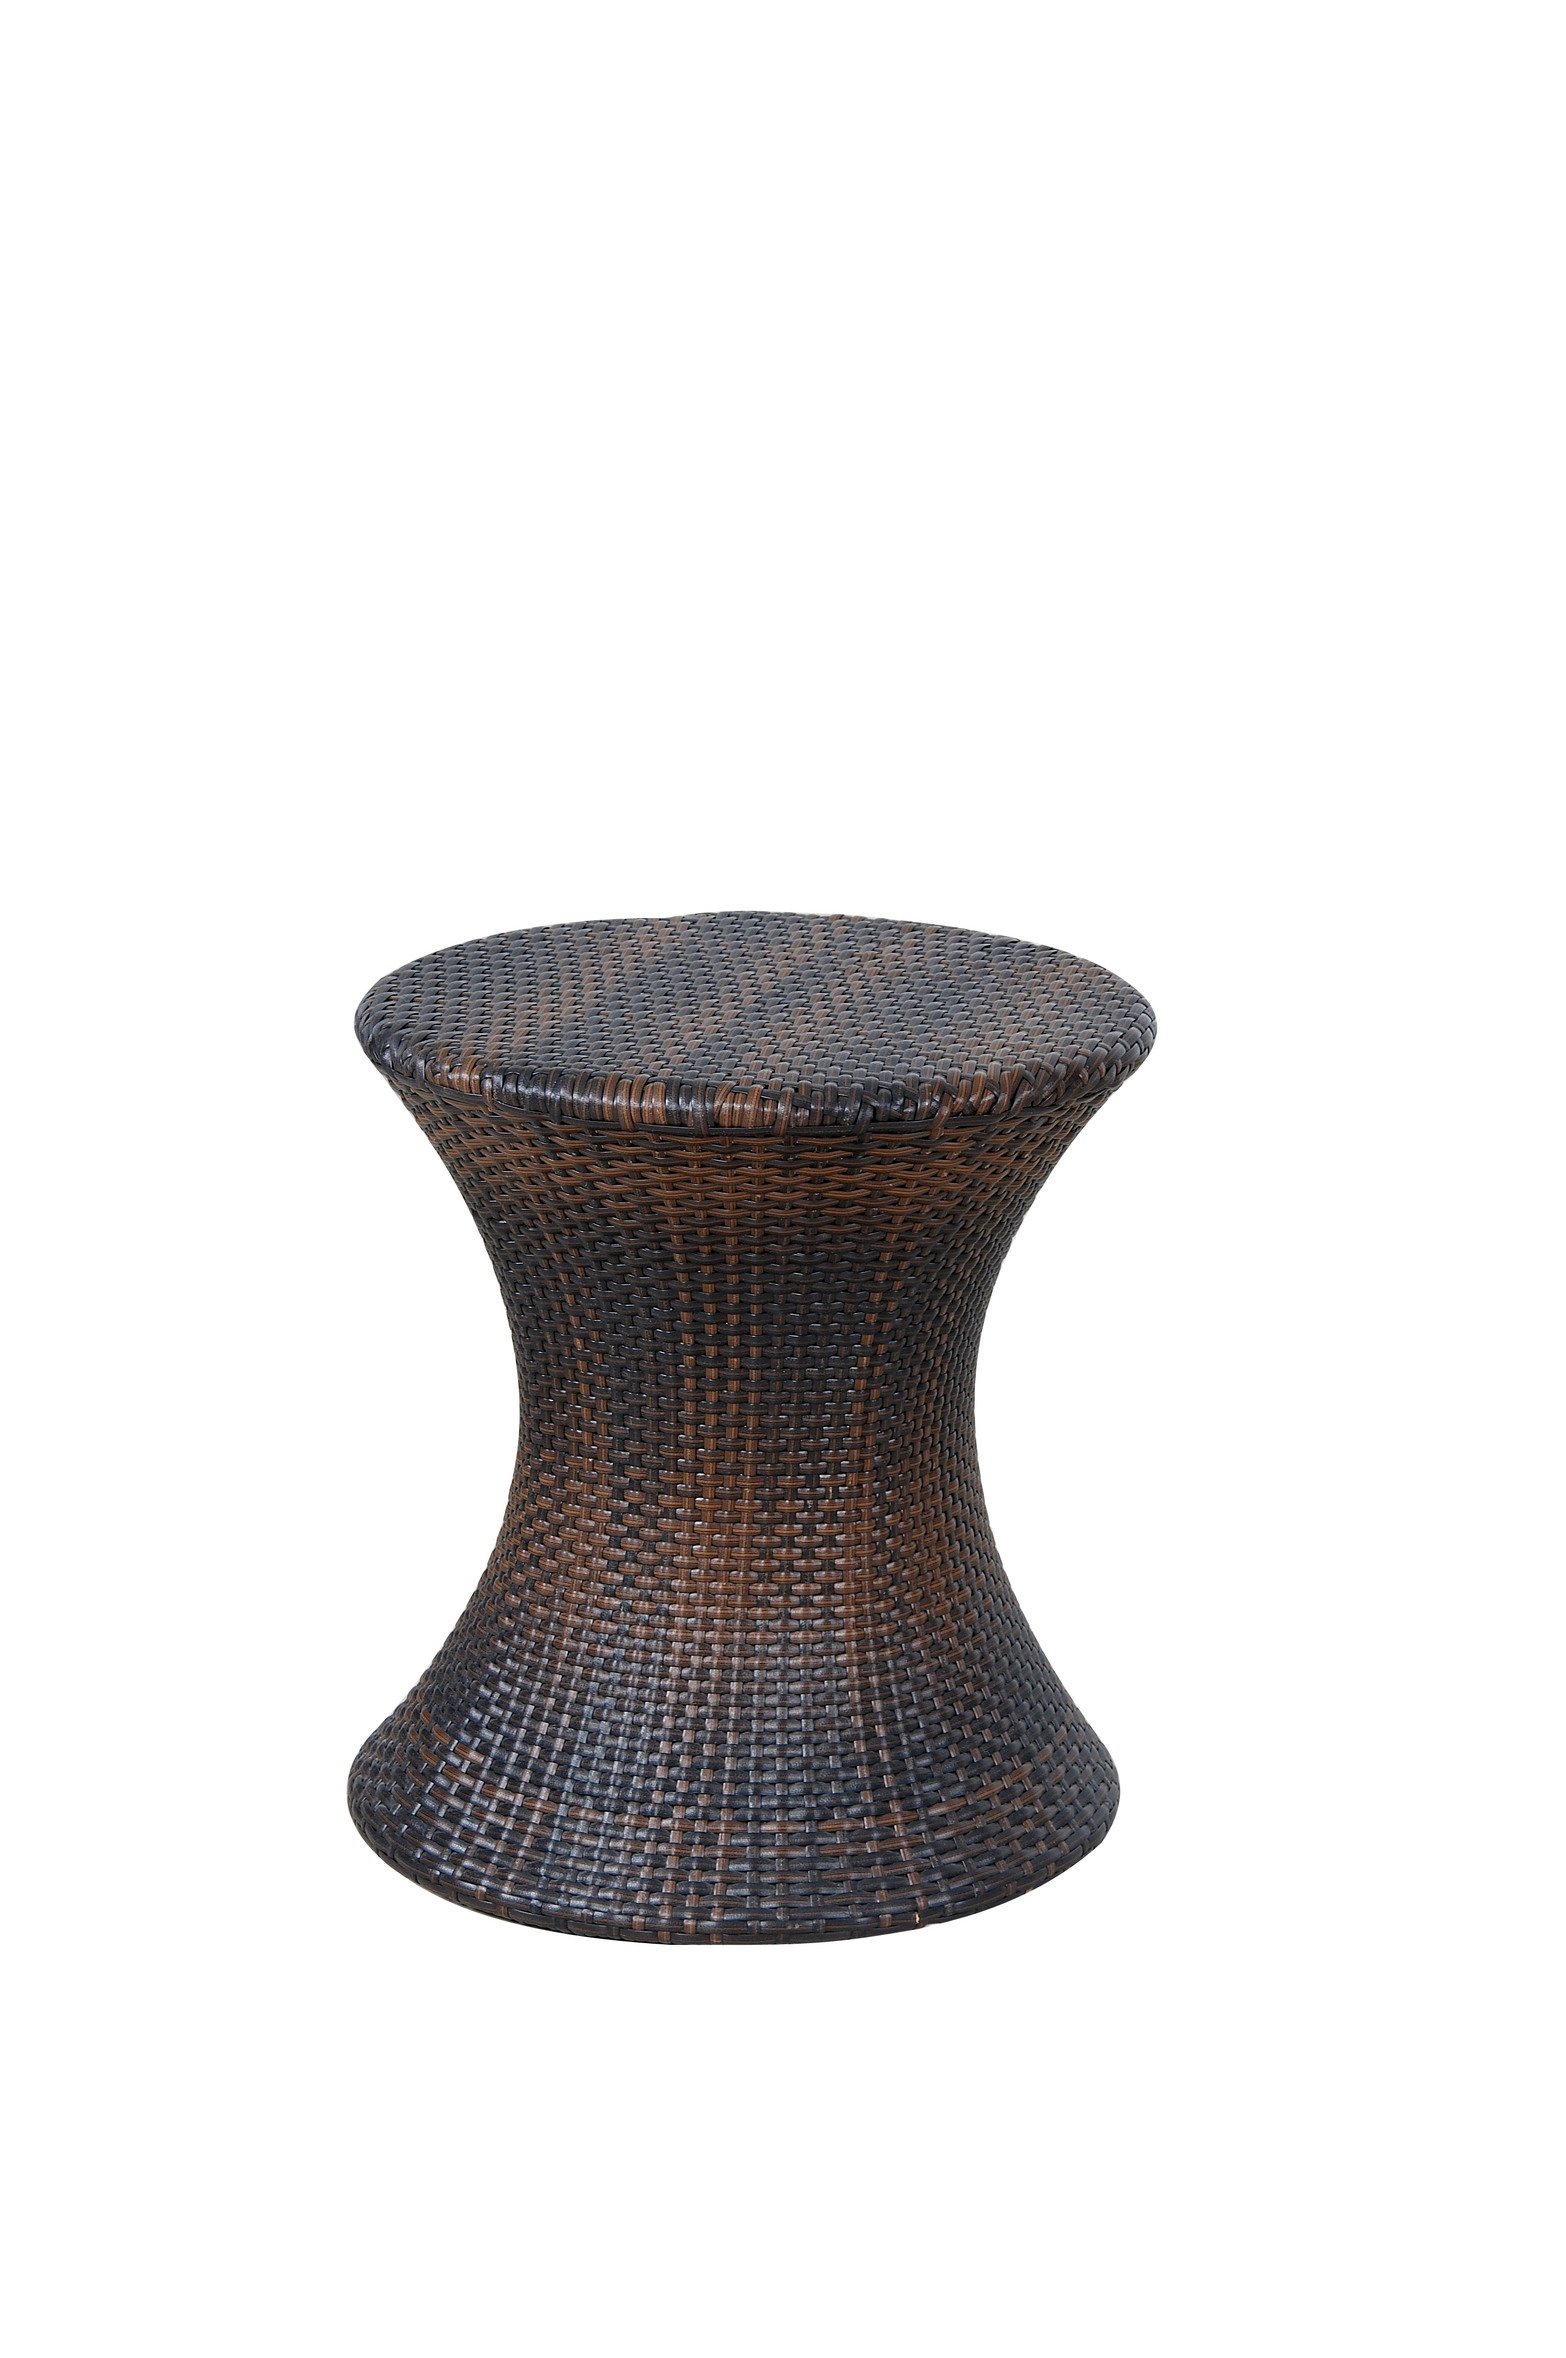 gorgeous small black outdoor side table target wicker kmart white round metal square tables marble glass lamps ana wooden studio ideas pedestal argos wood bedside and plastic